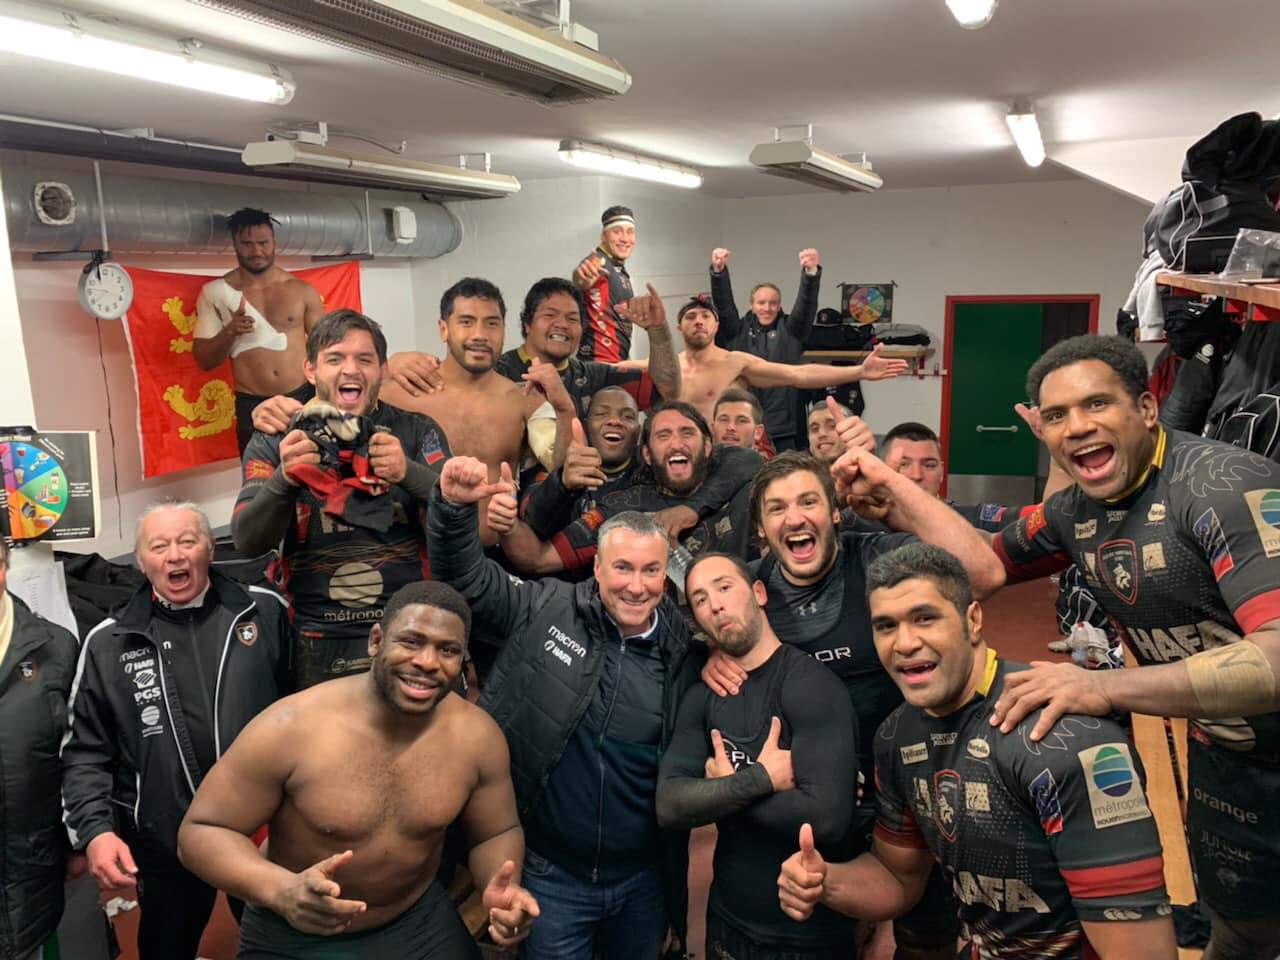 https://rouennormandierugby.fr/wp-content/uploads/2019/01/victoire_rnr_nantes.jpg